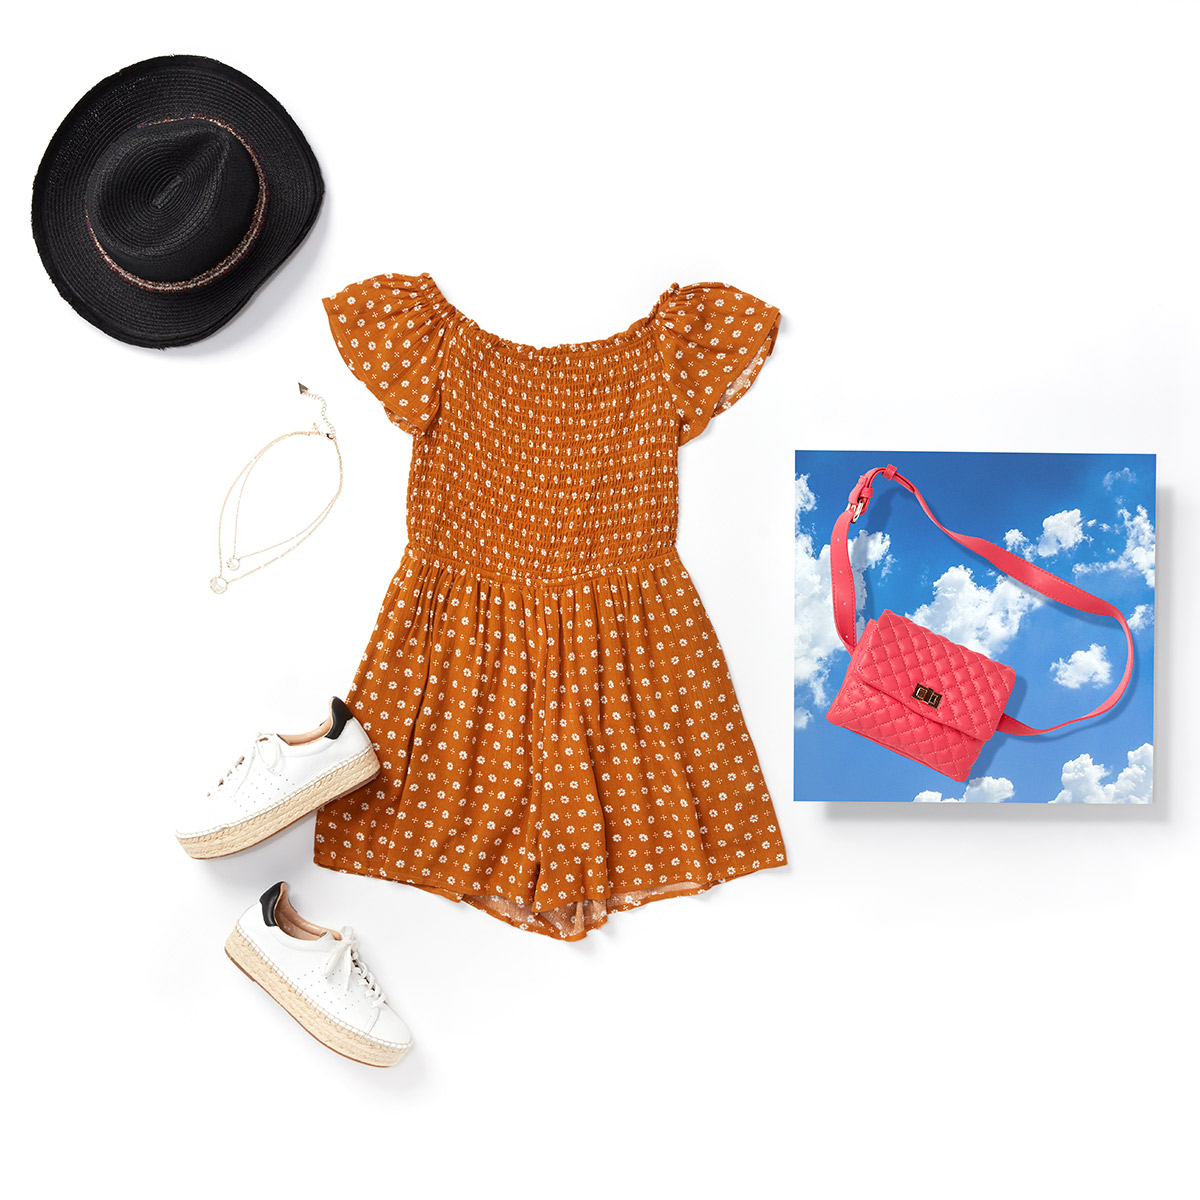 Brown romper, black hat, tassel necklace and white espadrilles sneakers laid flat on a white background.